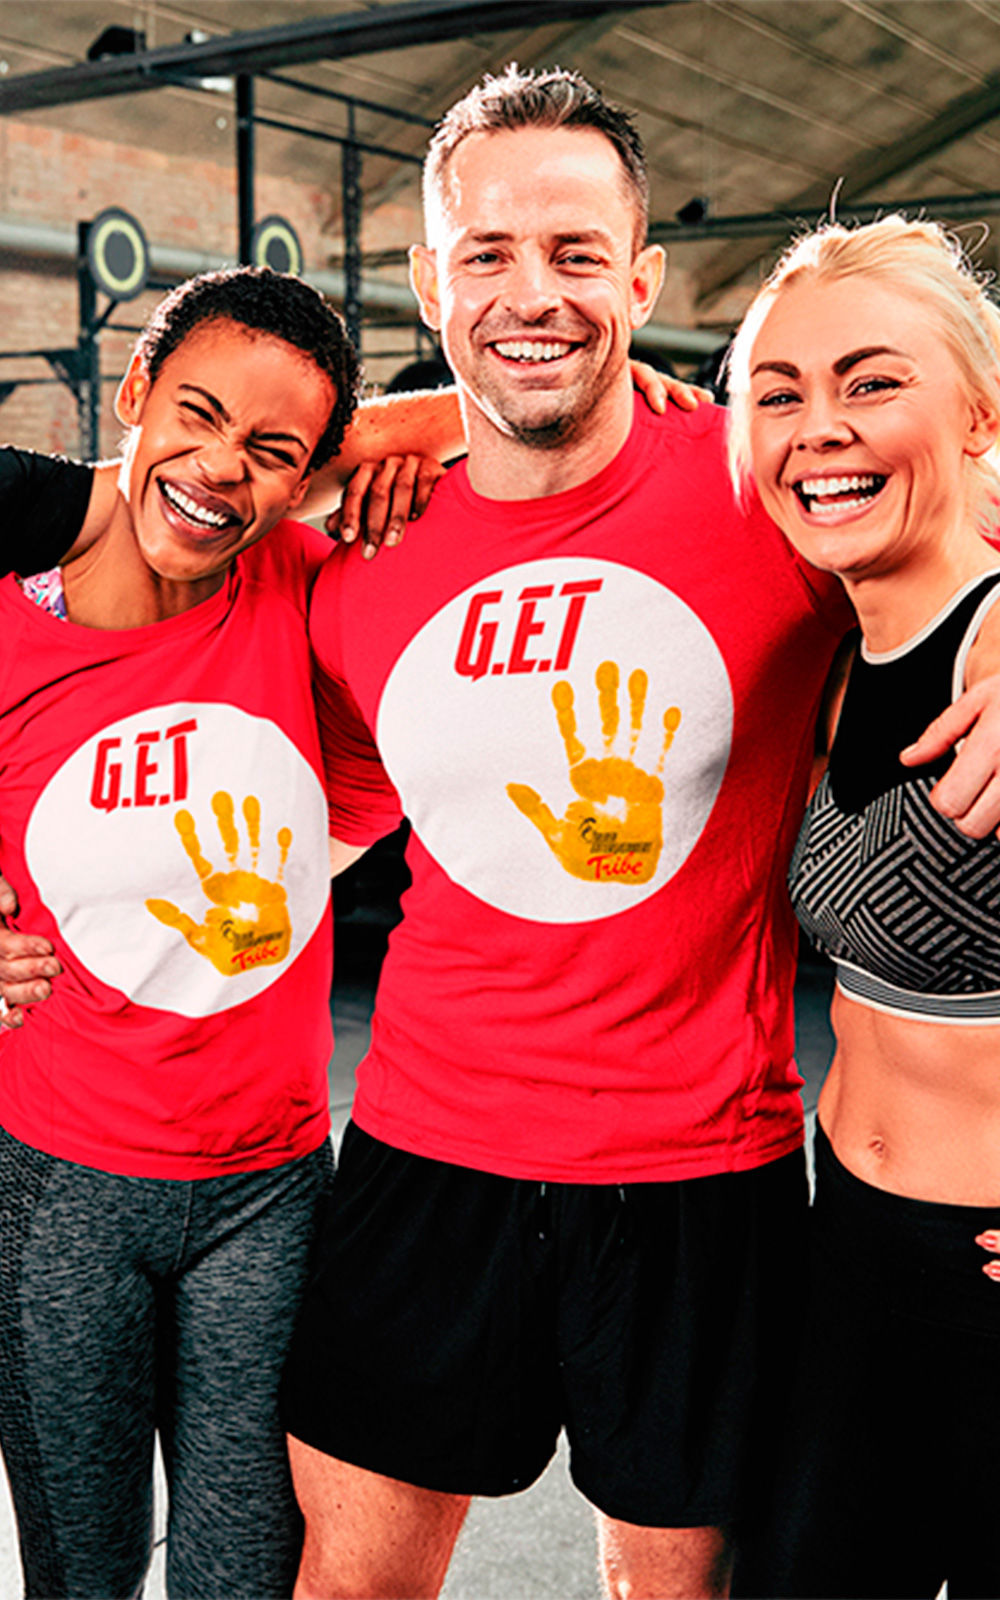 round-neck-tee-mockup-of-fitness-coaches-smiling-at-a-gym-34269-r-el2